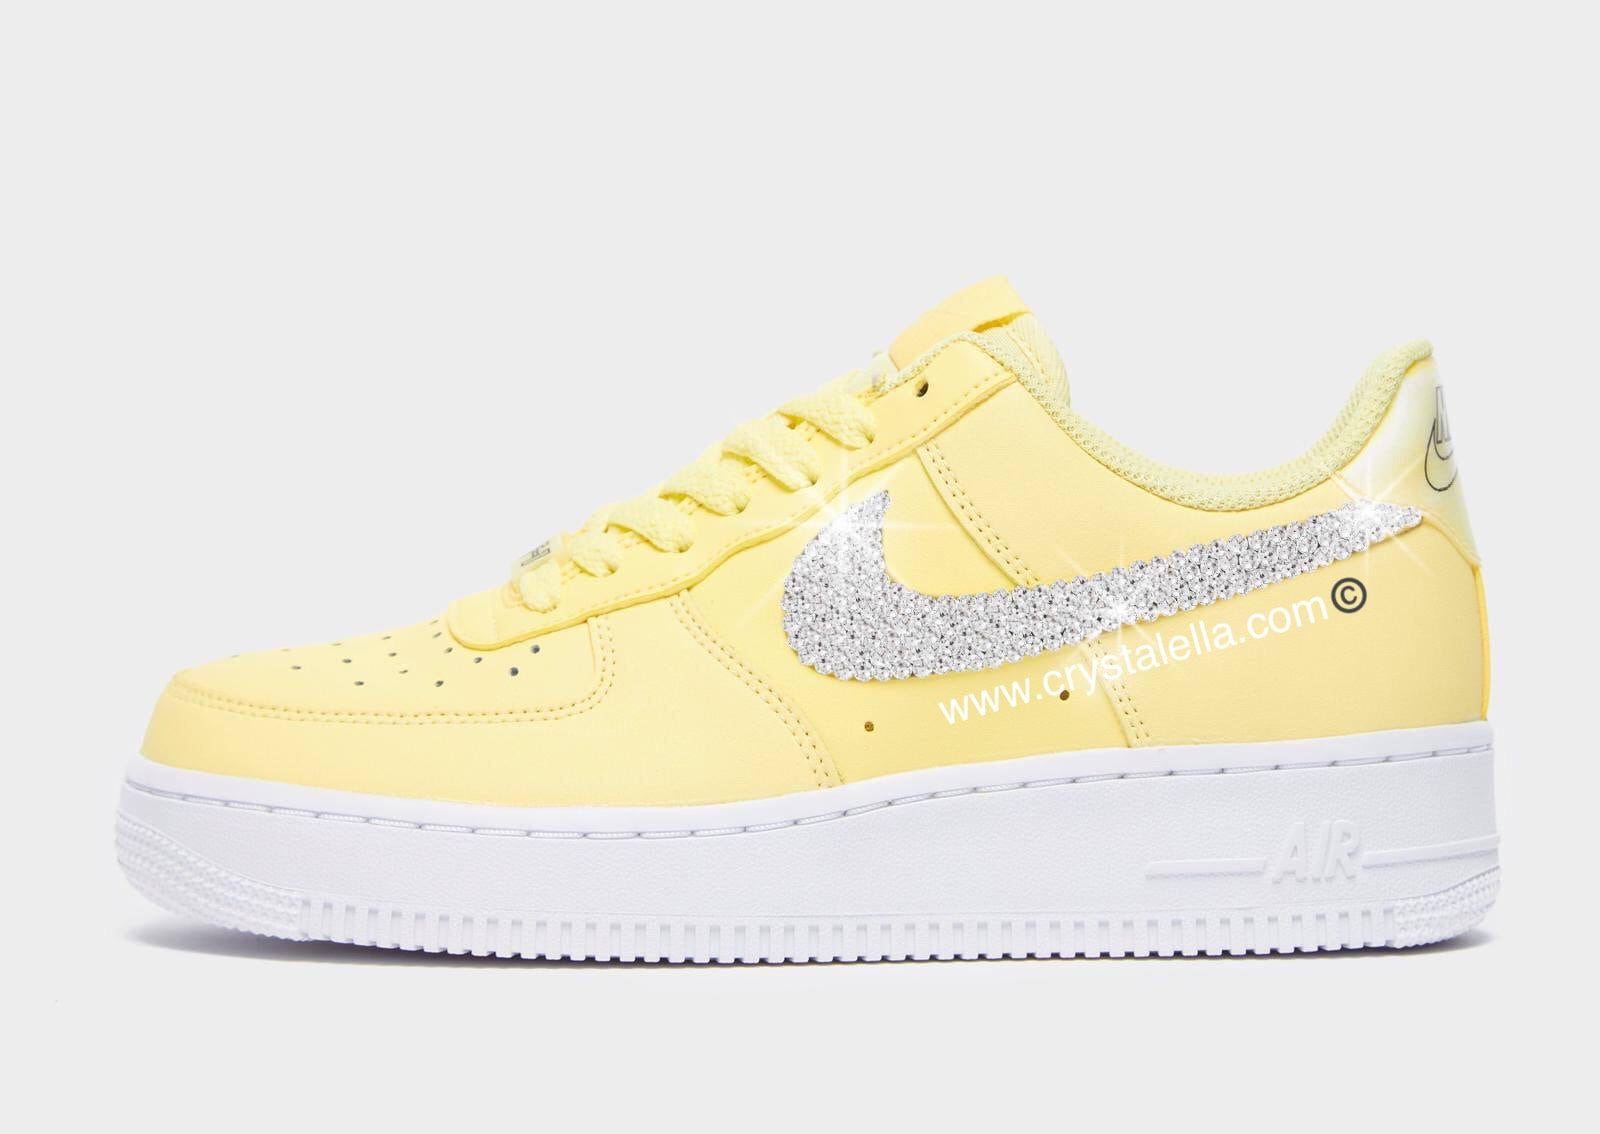 Yellow Nike Air Force 1's Swarovski Crystallised in Certified SilverClear Swarovski Crystals